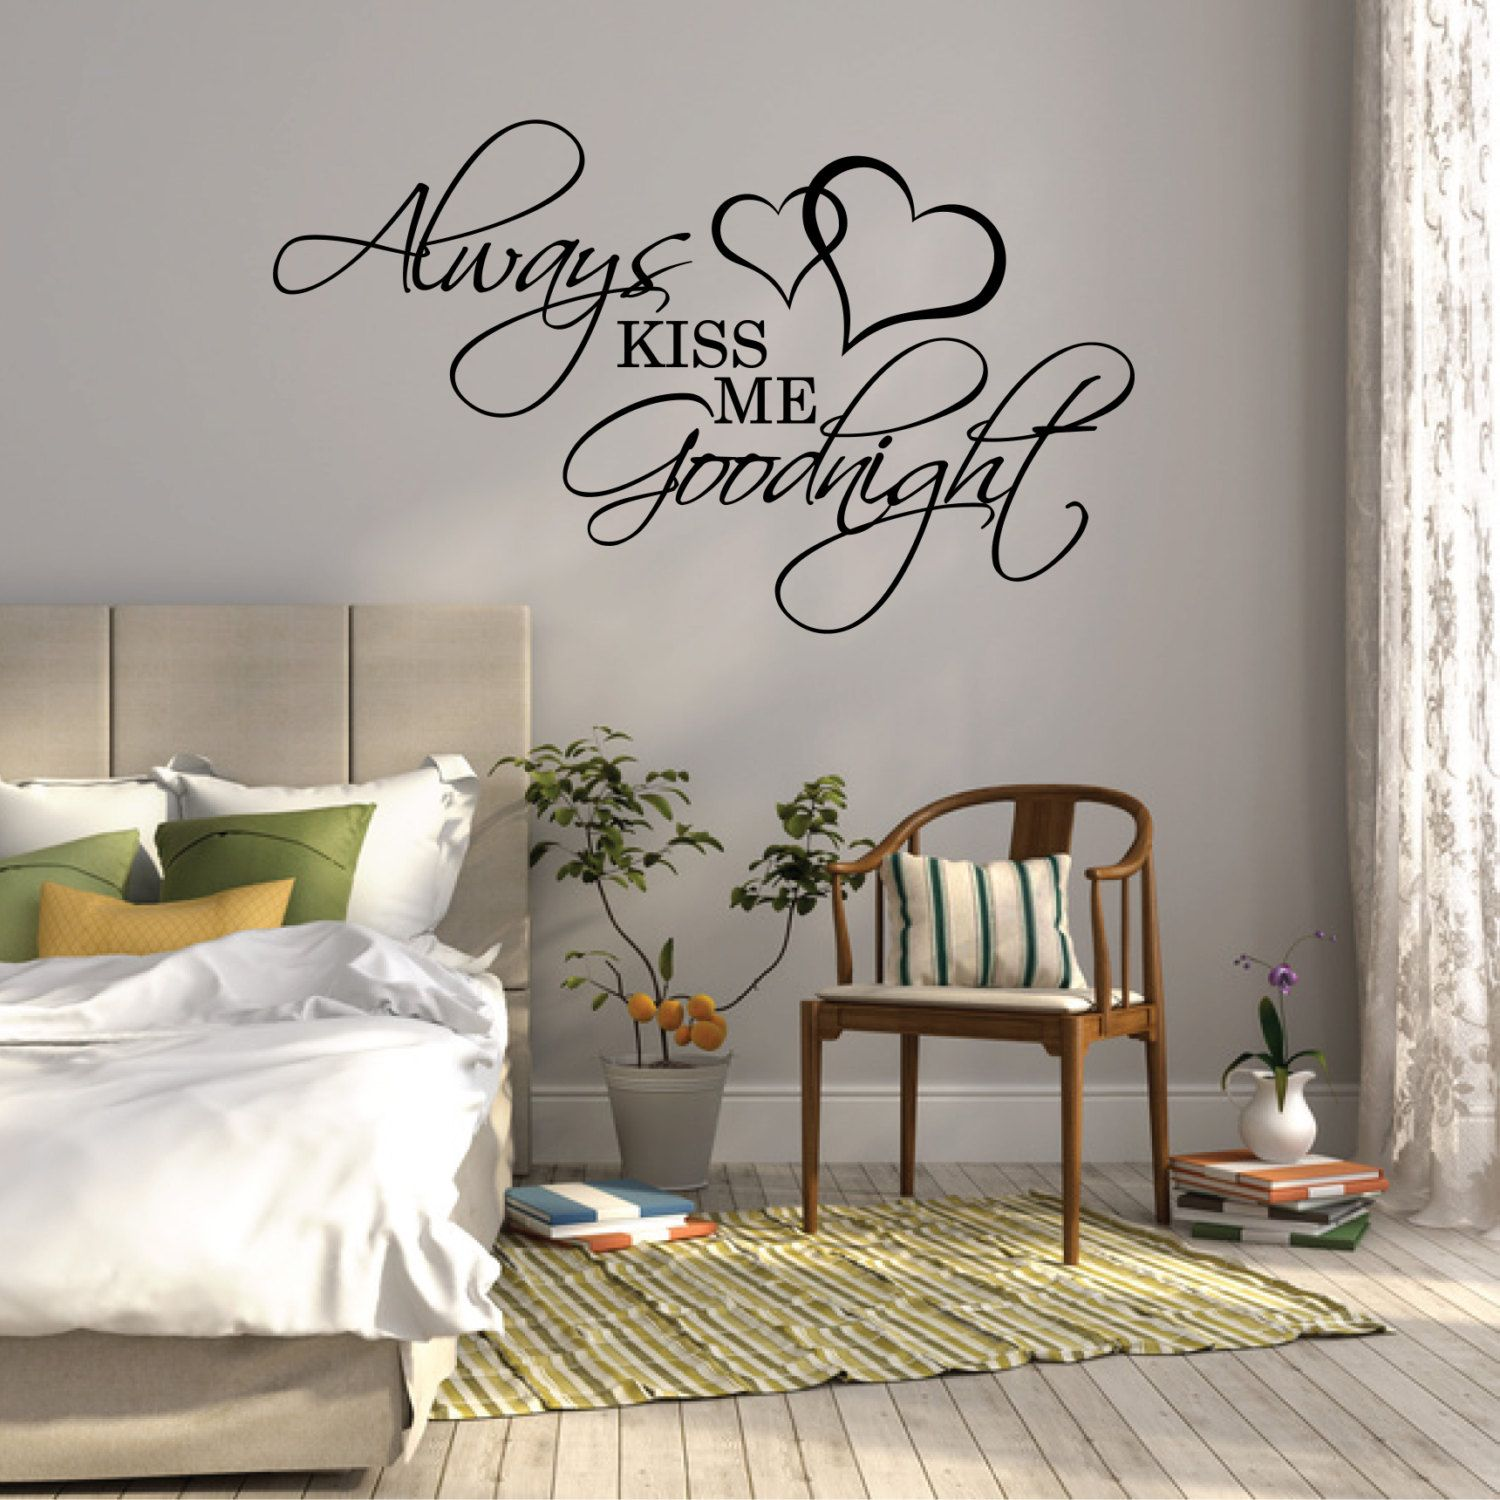 Wall sticker quote always kiss me goodnight over bed Master bedroom wall art ideas